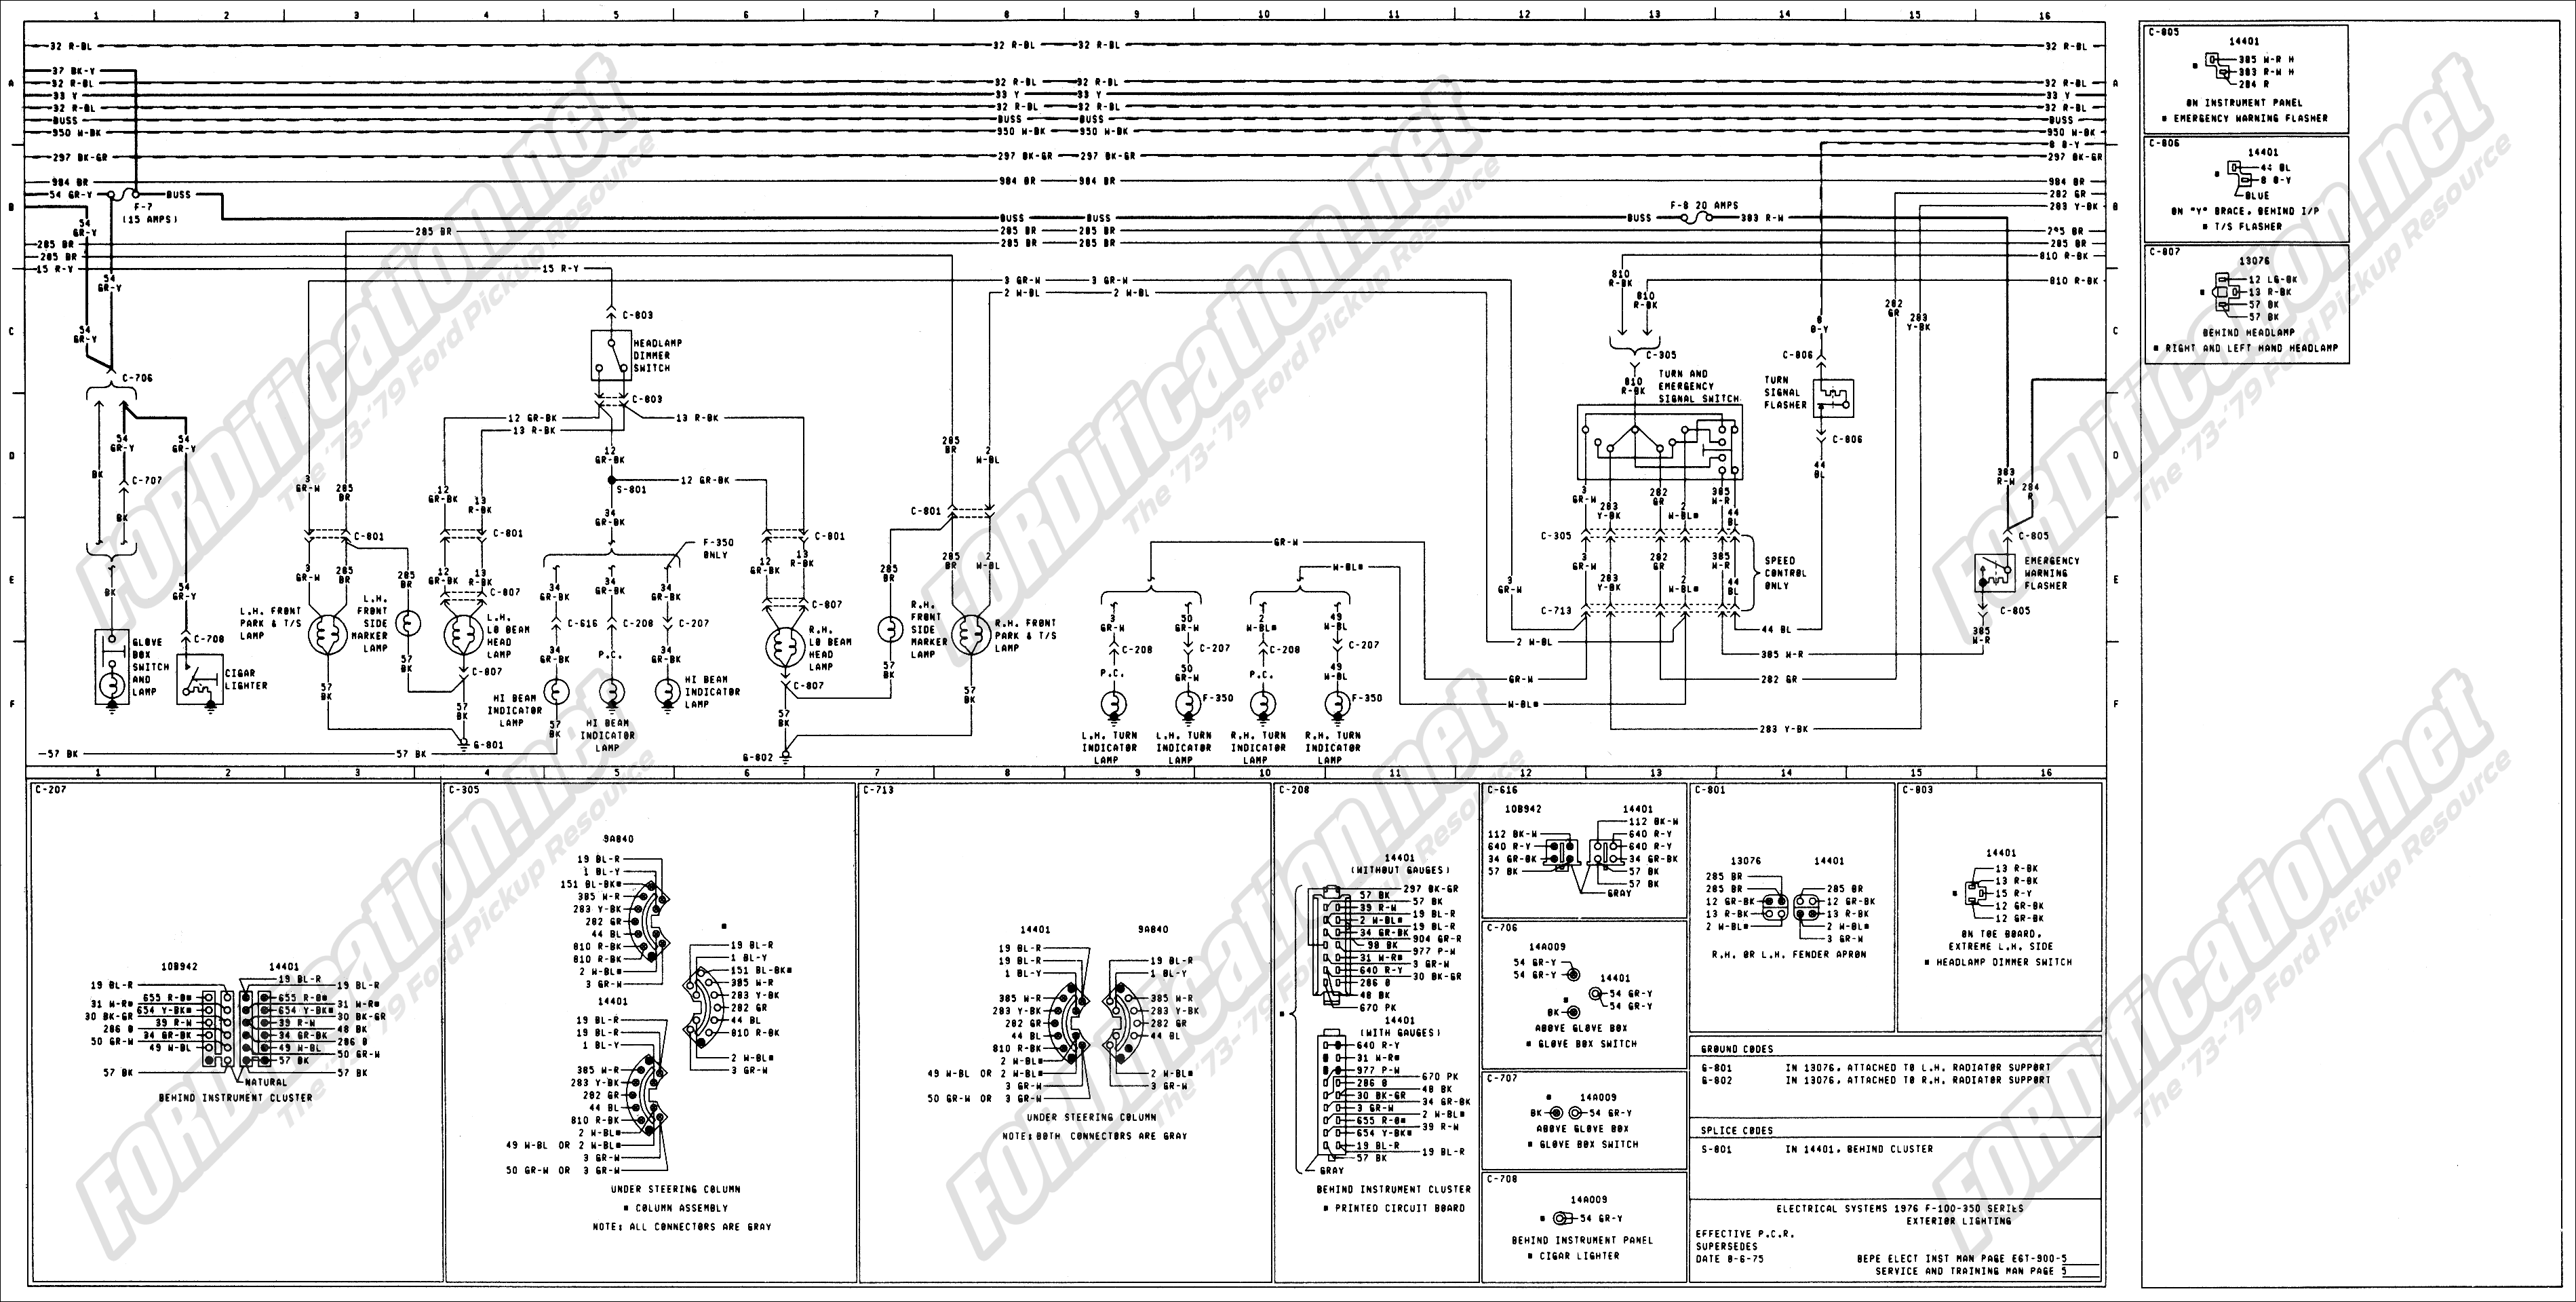 1976 ford f150 fuse box diagram wiring schematic diagram rh  asparklingjourney com ford f100 fuse box location 1965 ford f100 fuse box